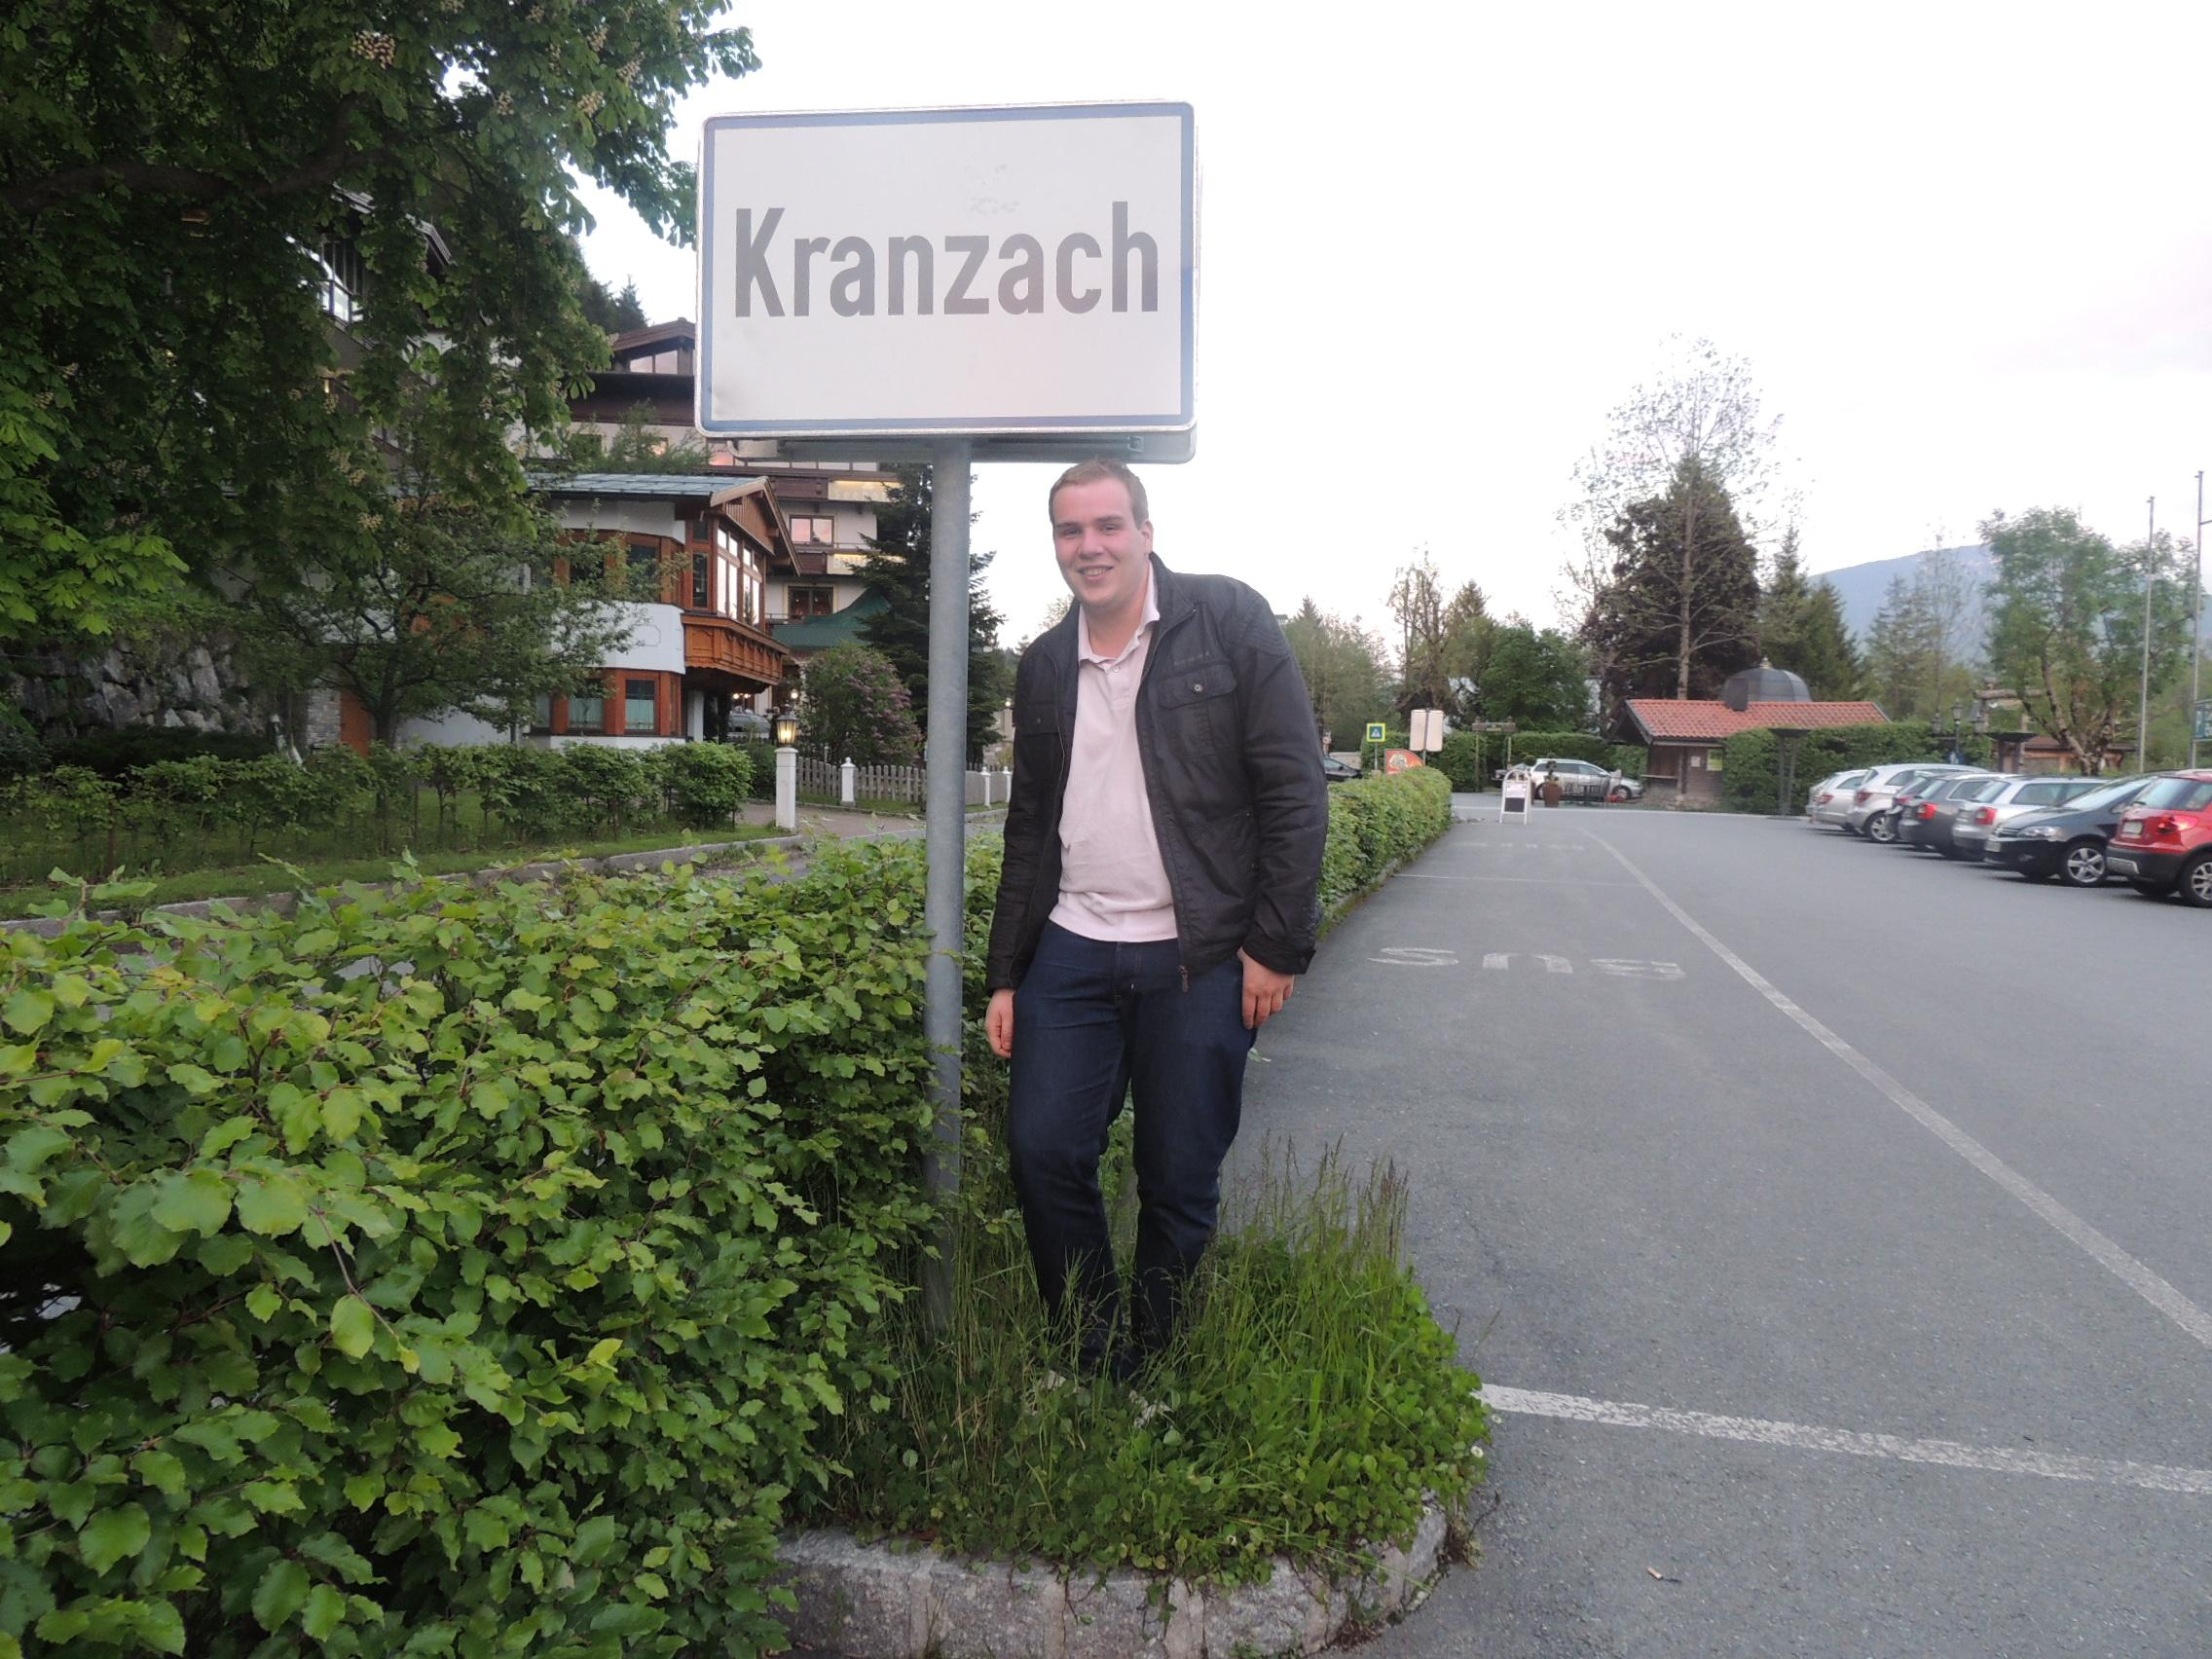 Welcome in Kranzach (Chris)